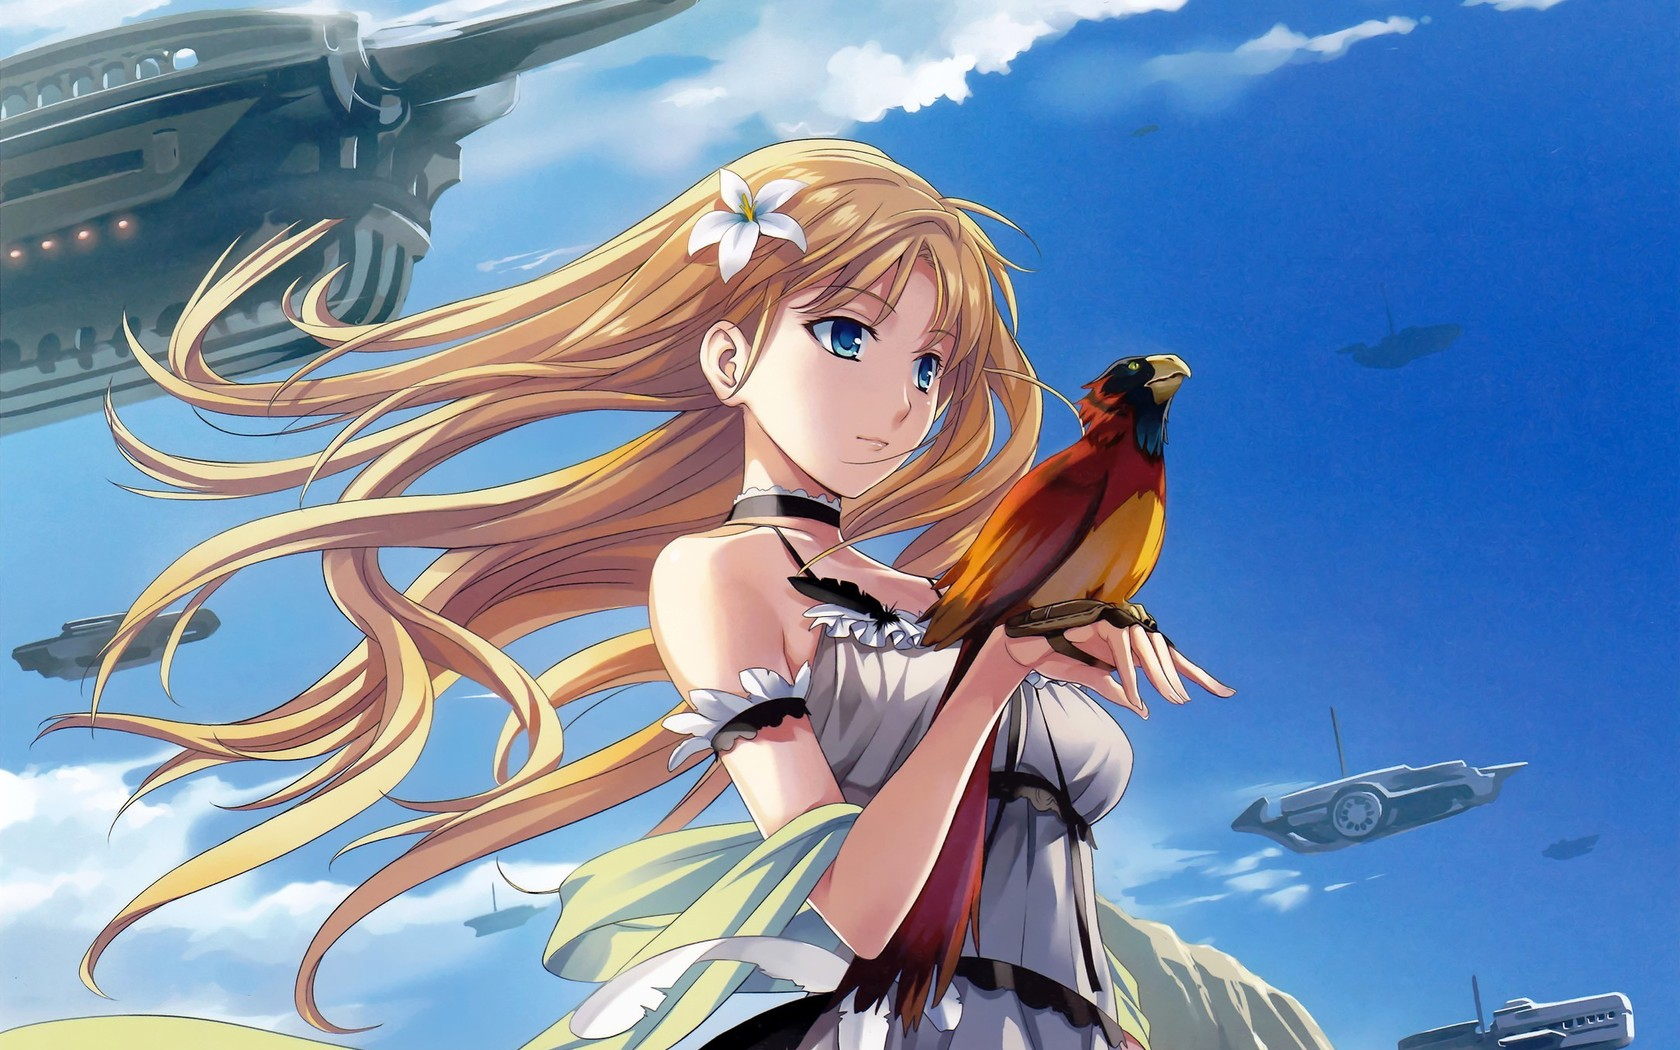 Anime girl with bird